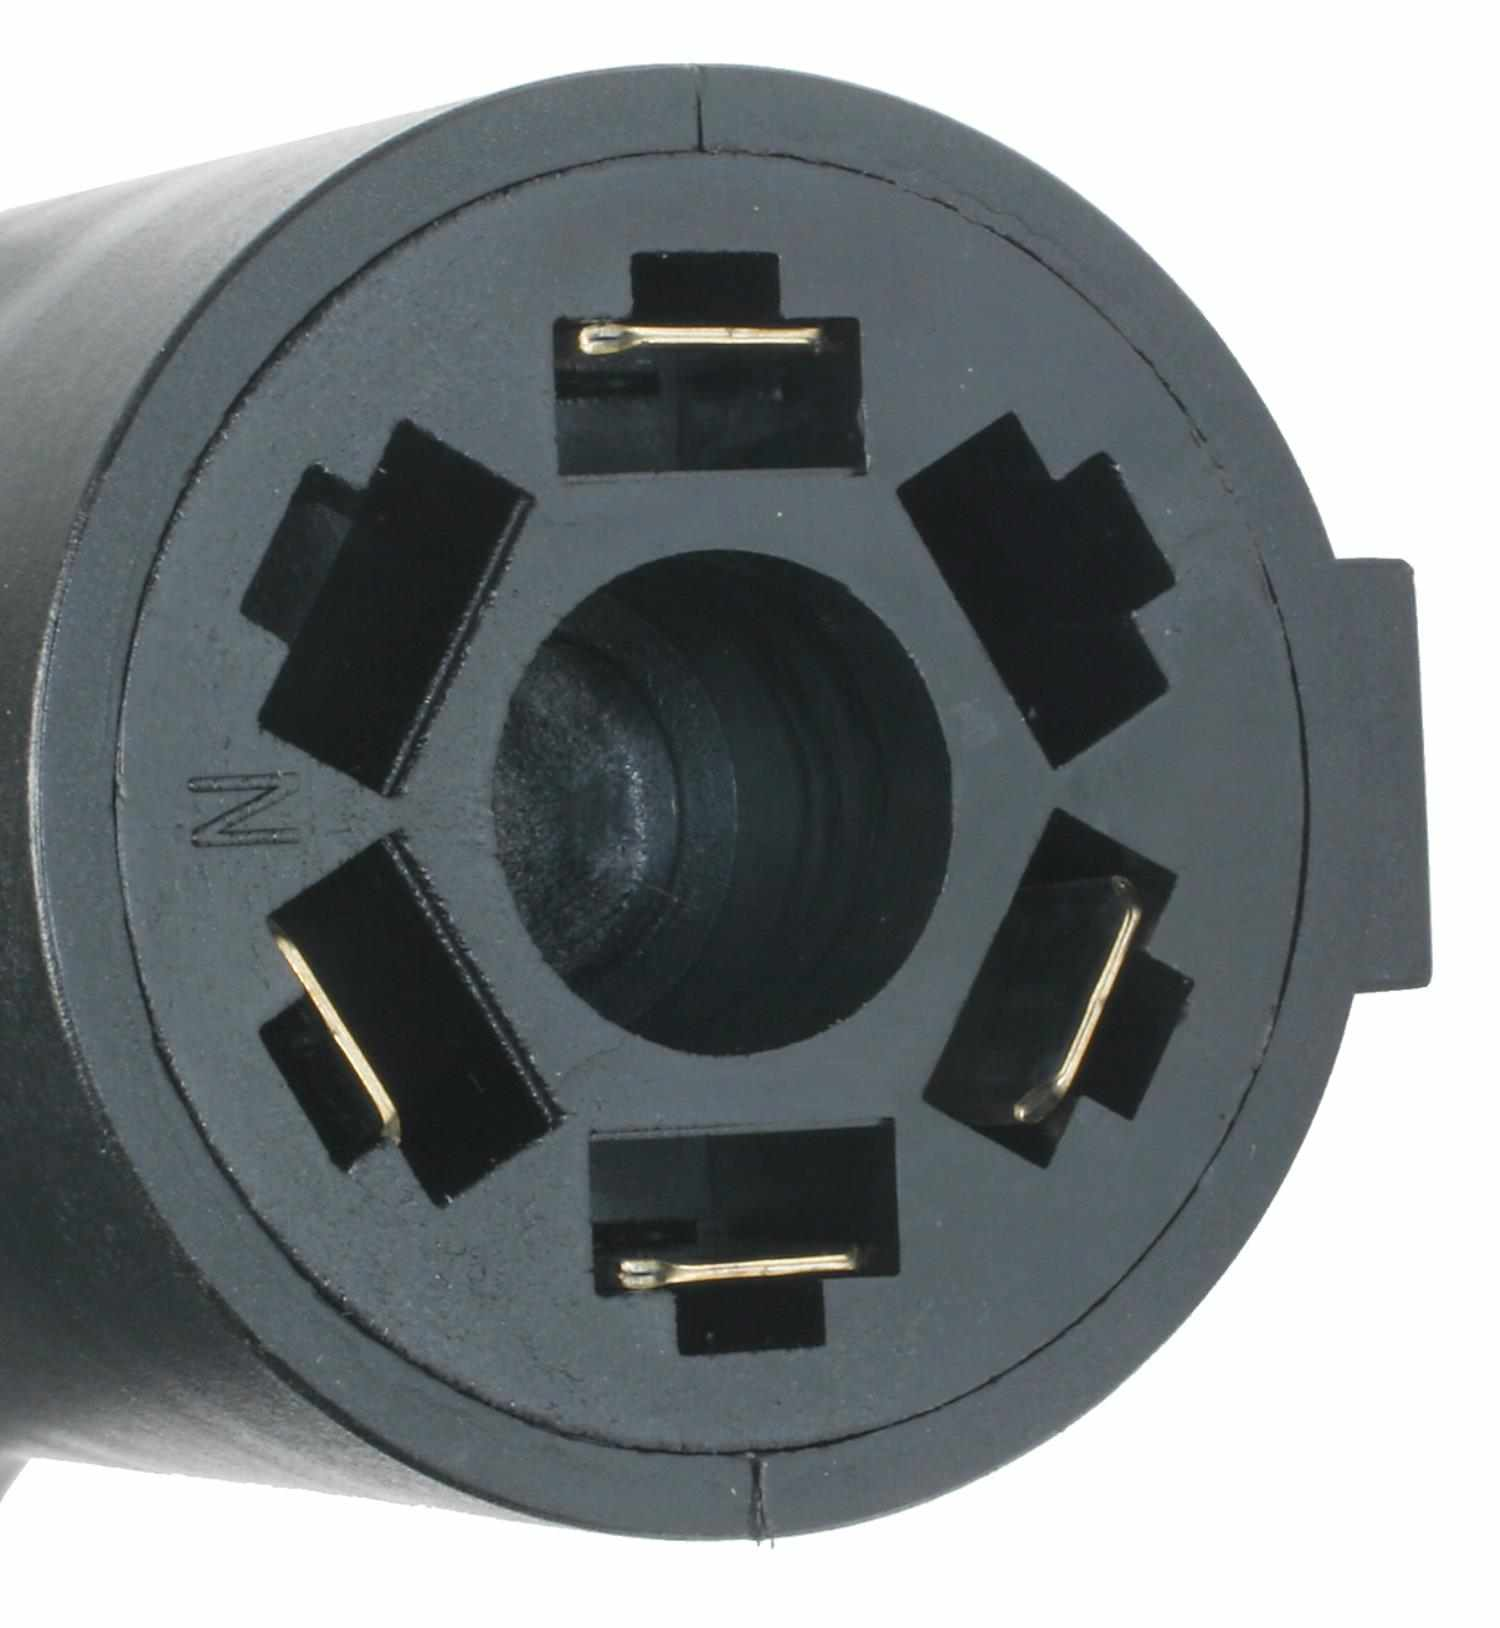 ACDELCO PROFESSIONAL - Trailer Connector - Converter 1 - DCC TC191